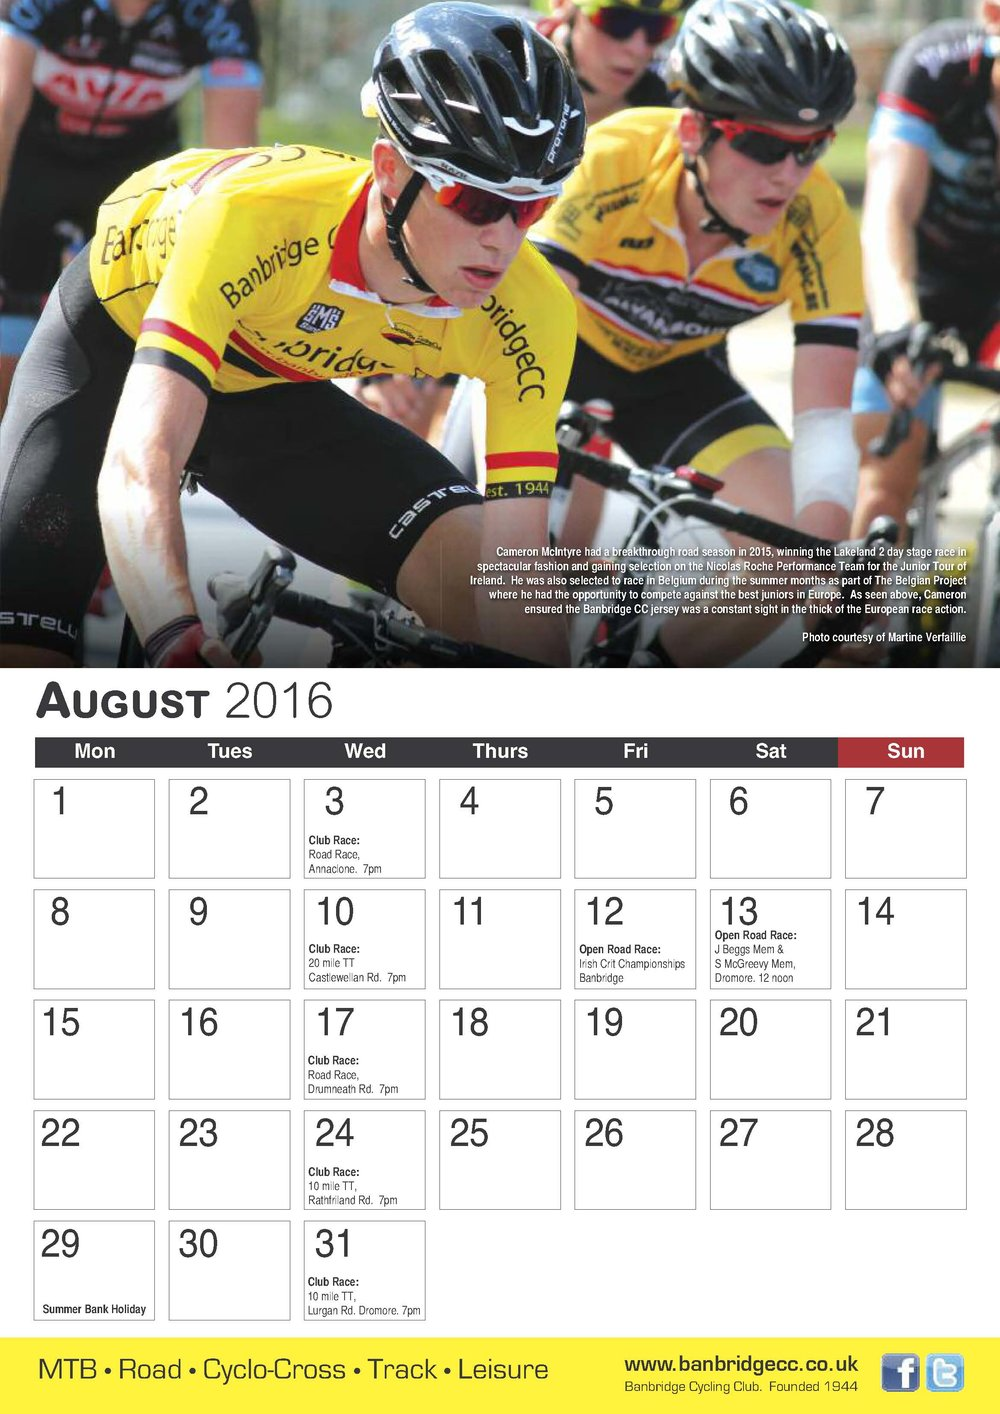 Banbridge CC 2016 Calendar Sample_Page_6.jpg